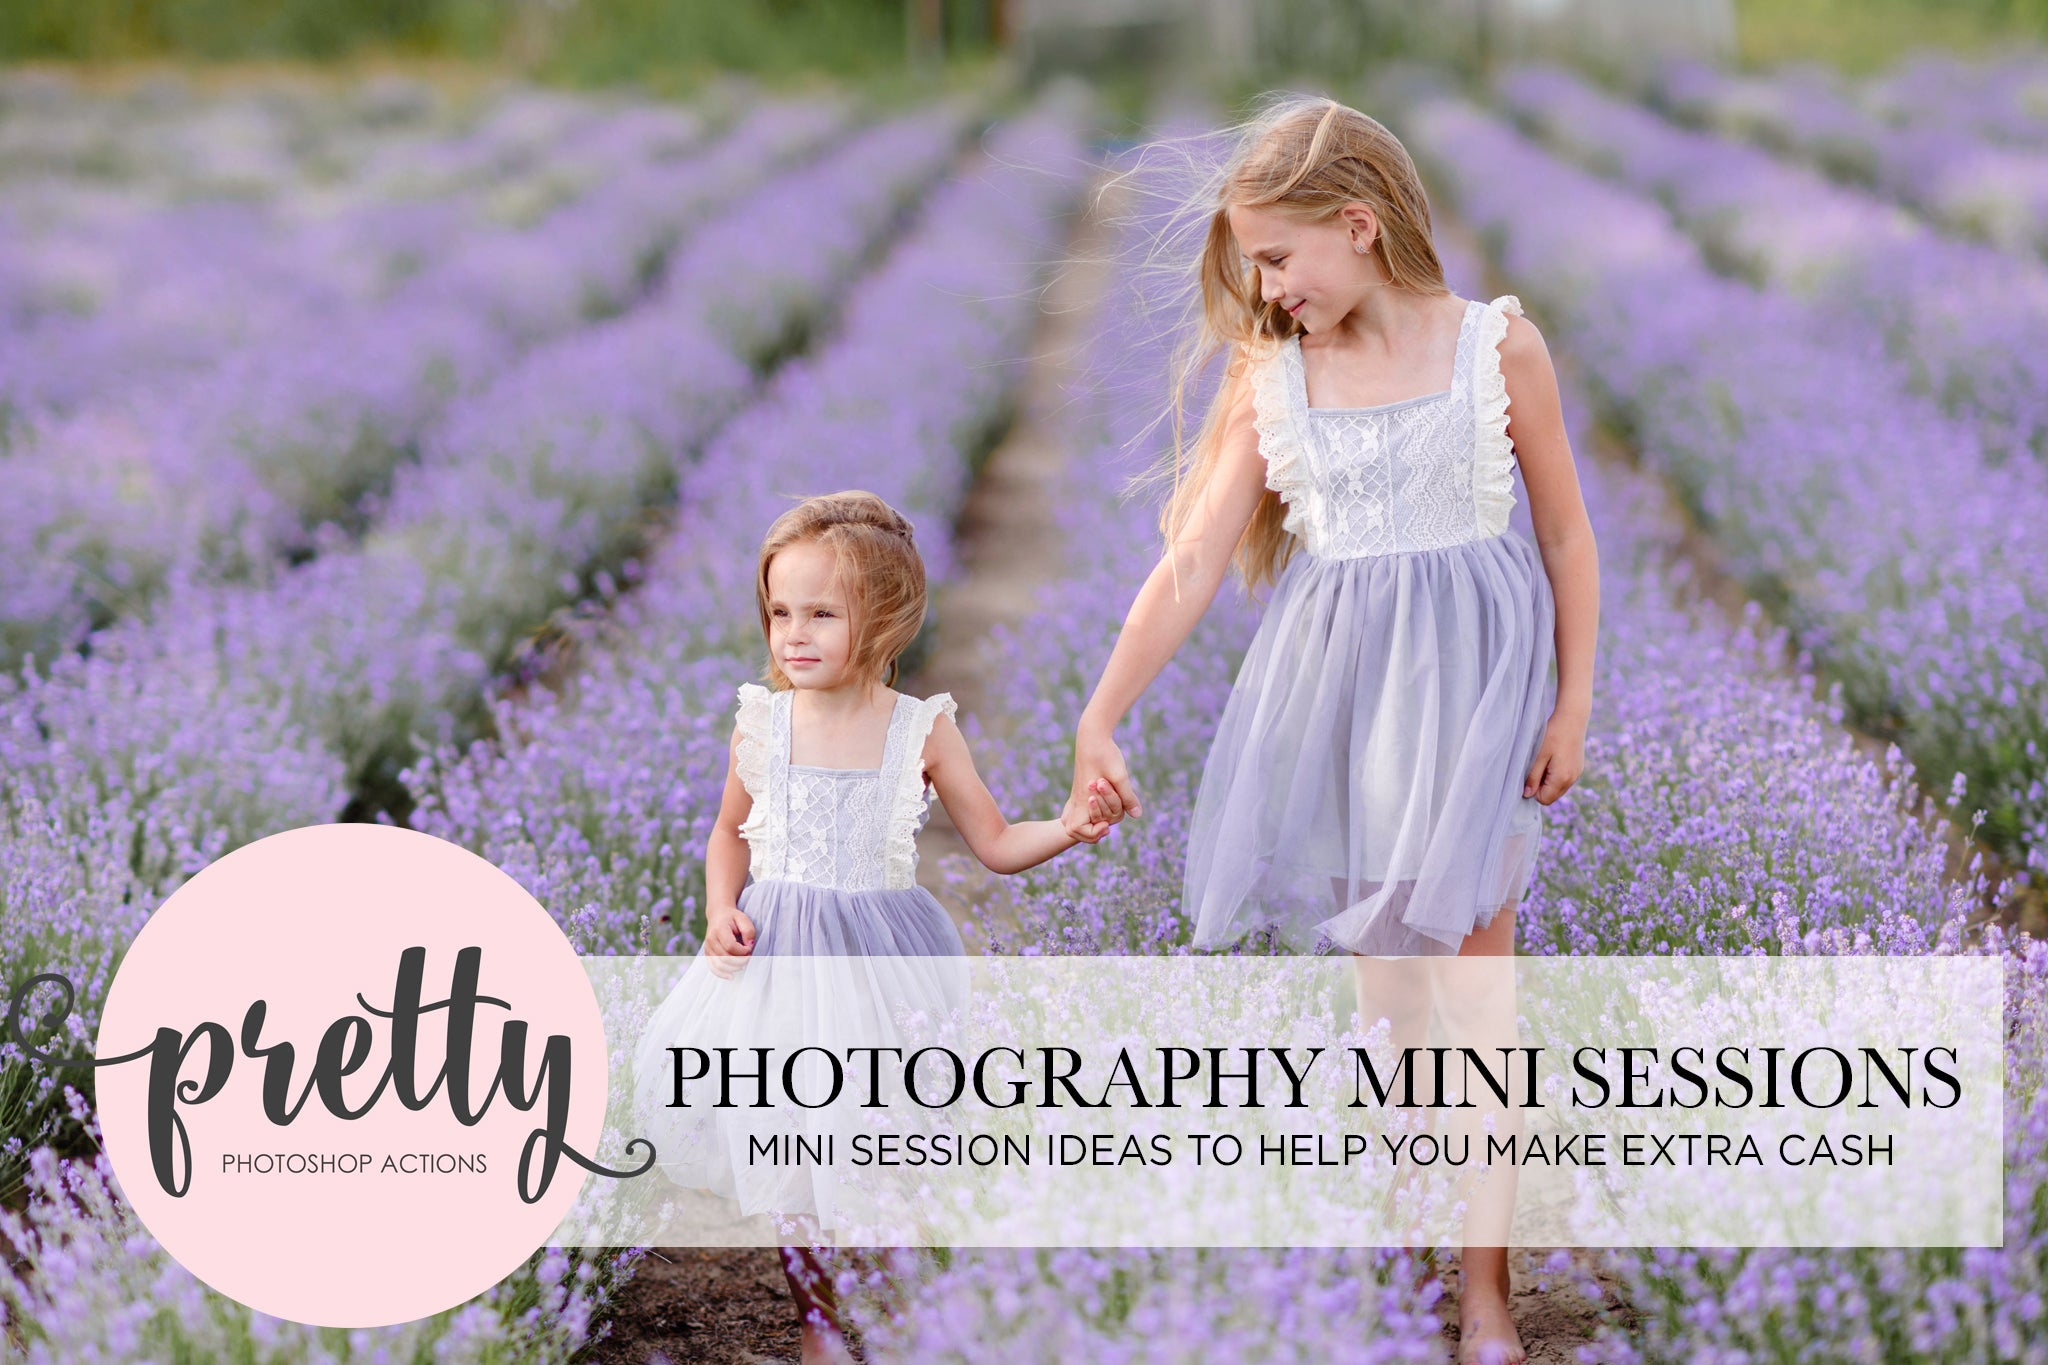 Photography Mini Sessions_Photography ideas to help you make extra cash